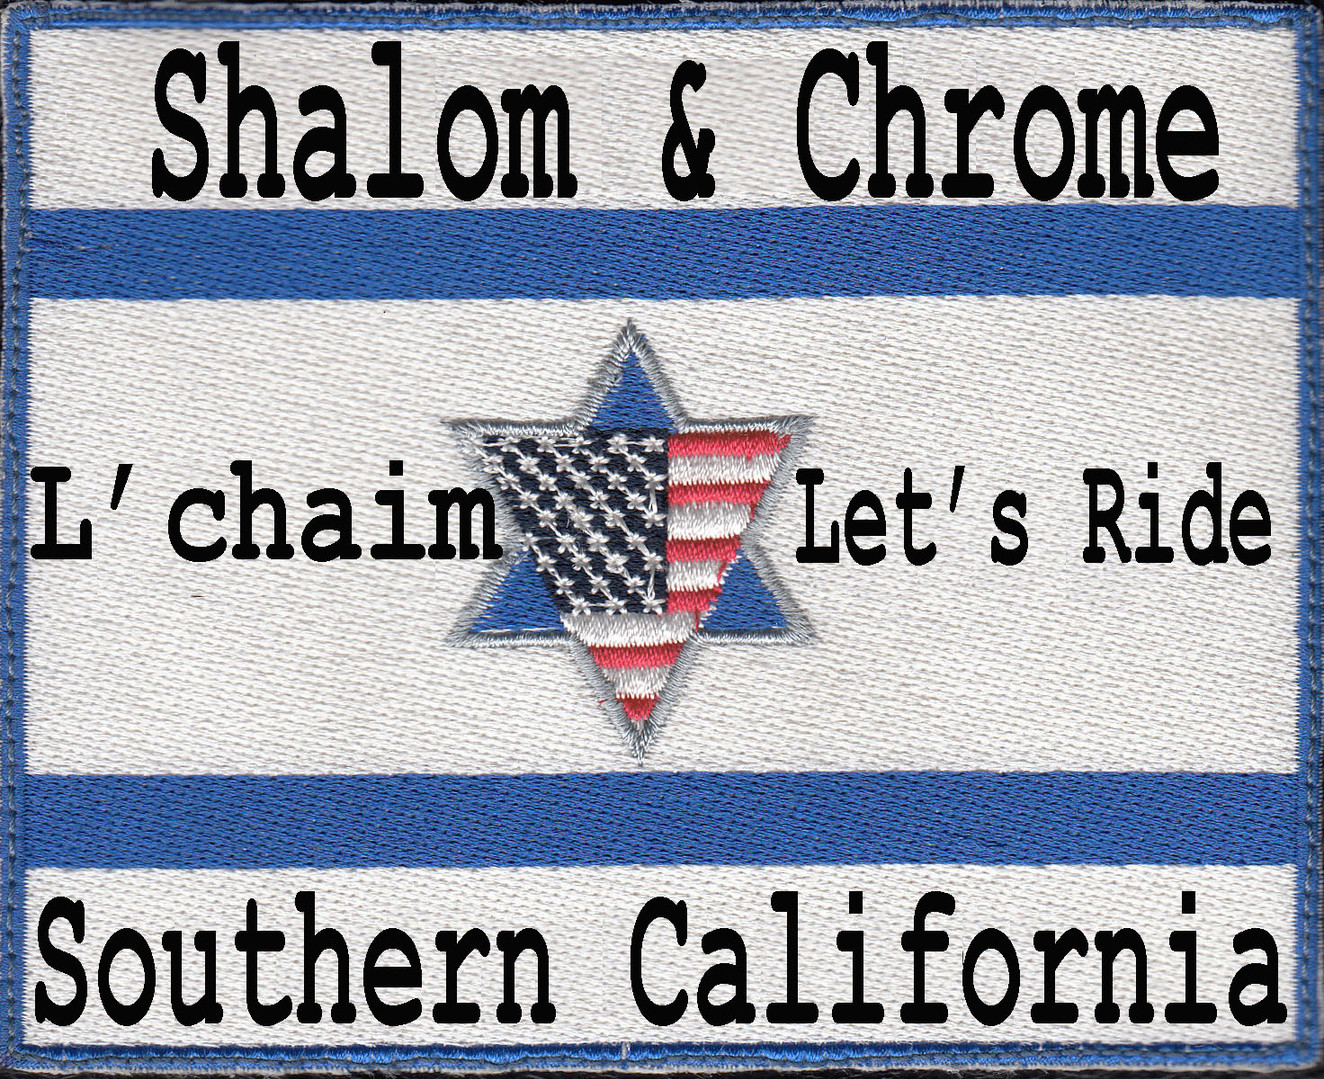 Shalom n Chrome copy-1.jpg